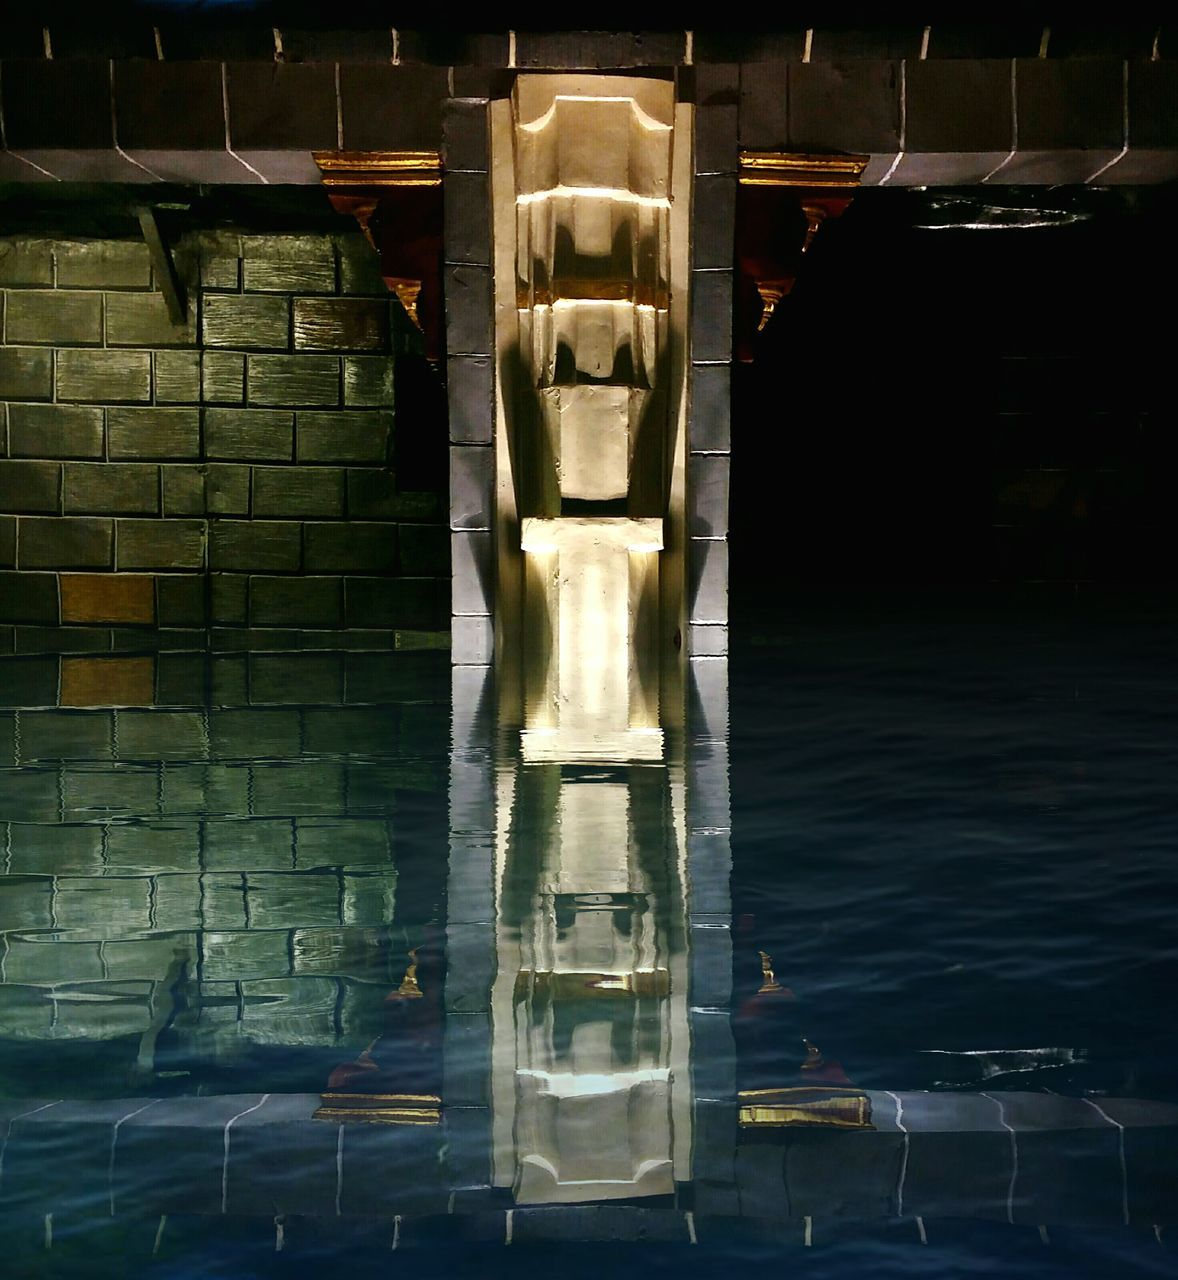 water, built structure, architecture, illuminated, no people, statue, sculpture, indoors, architectural column, day, close-up